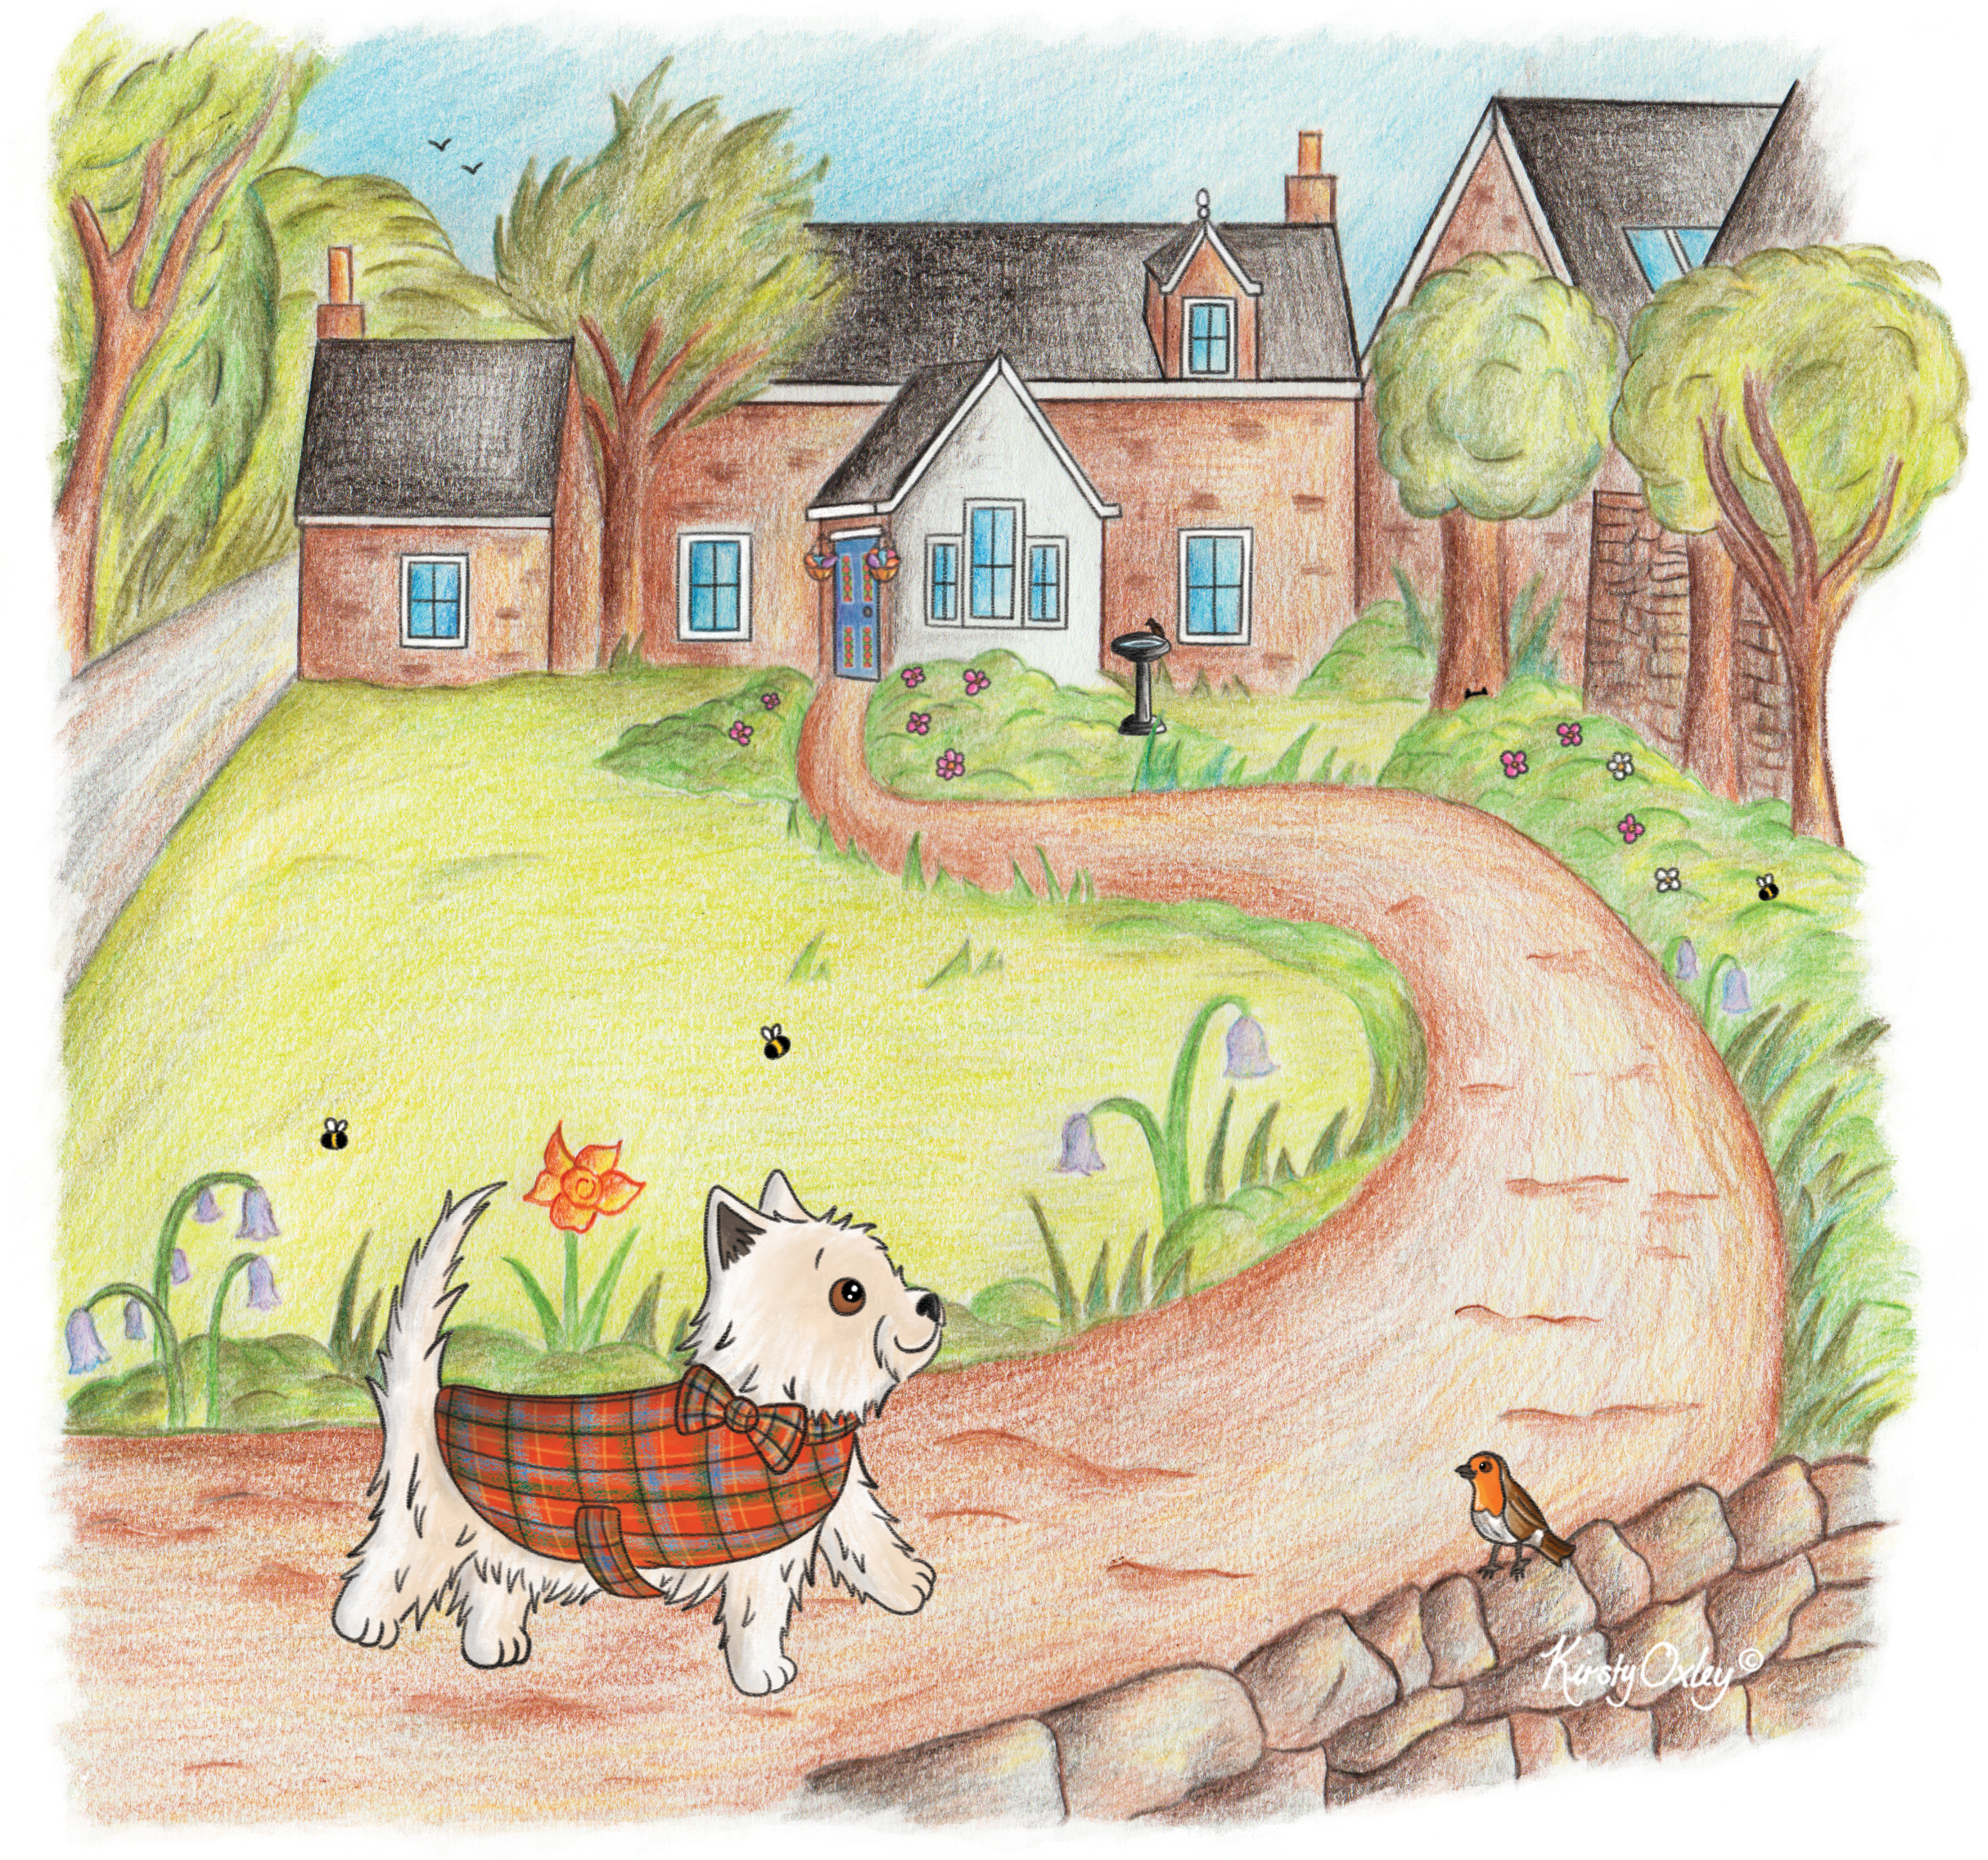 Corries_Capers_Tattoo_Toorie_Bluebell_Cottage_Kirsty_Oxley_Illustration_For_Web.jpg